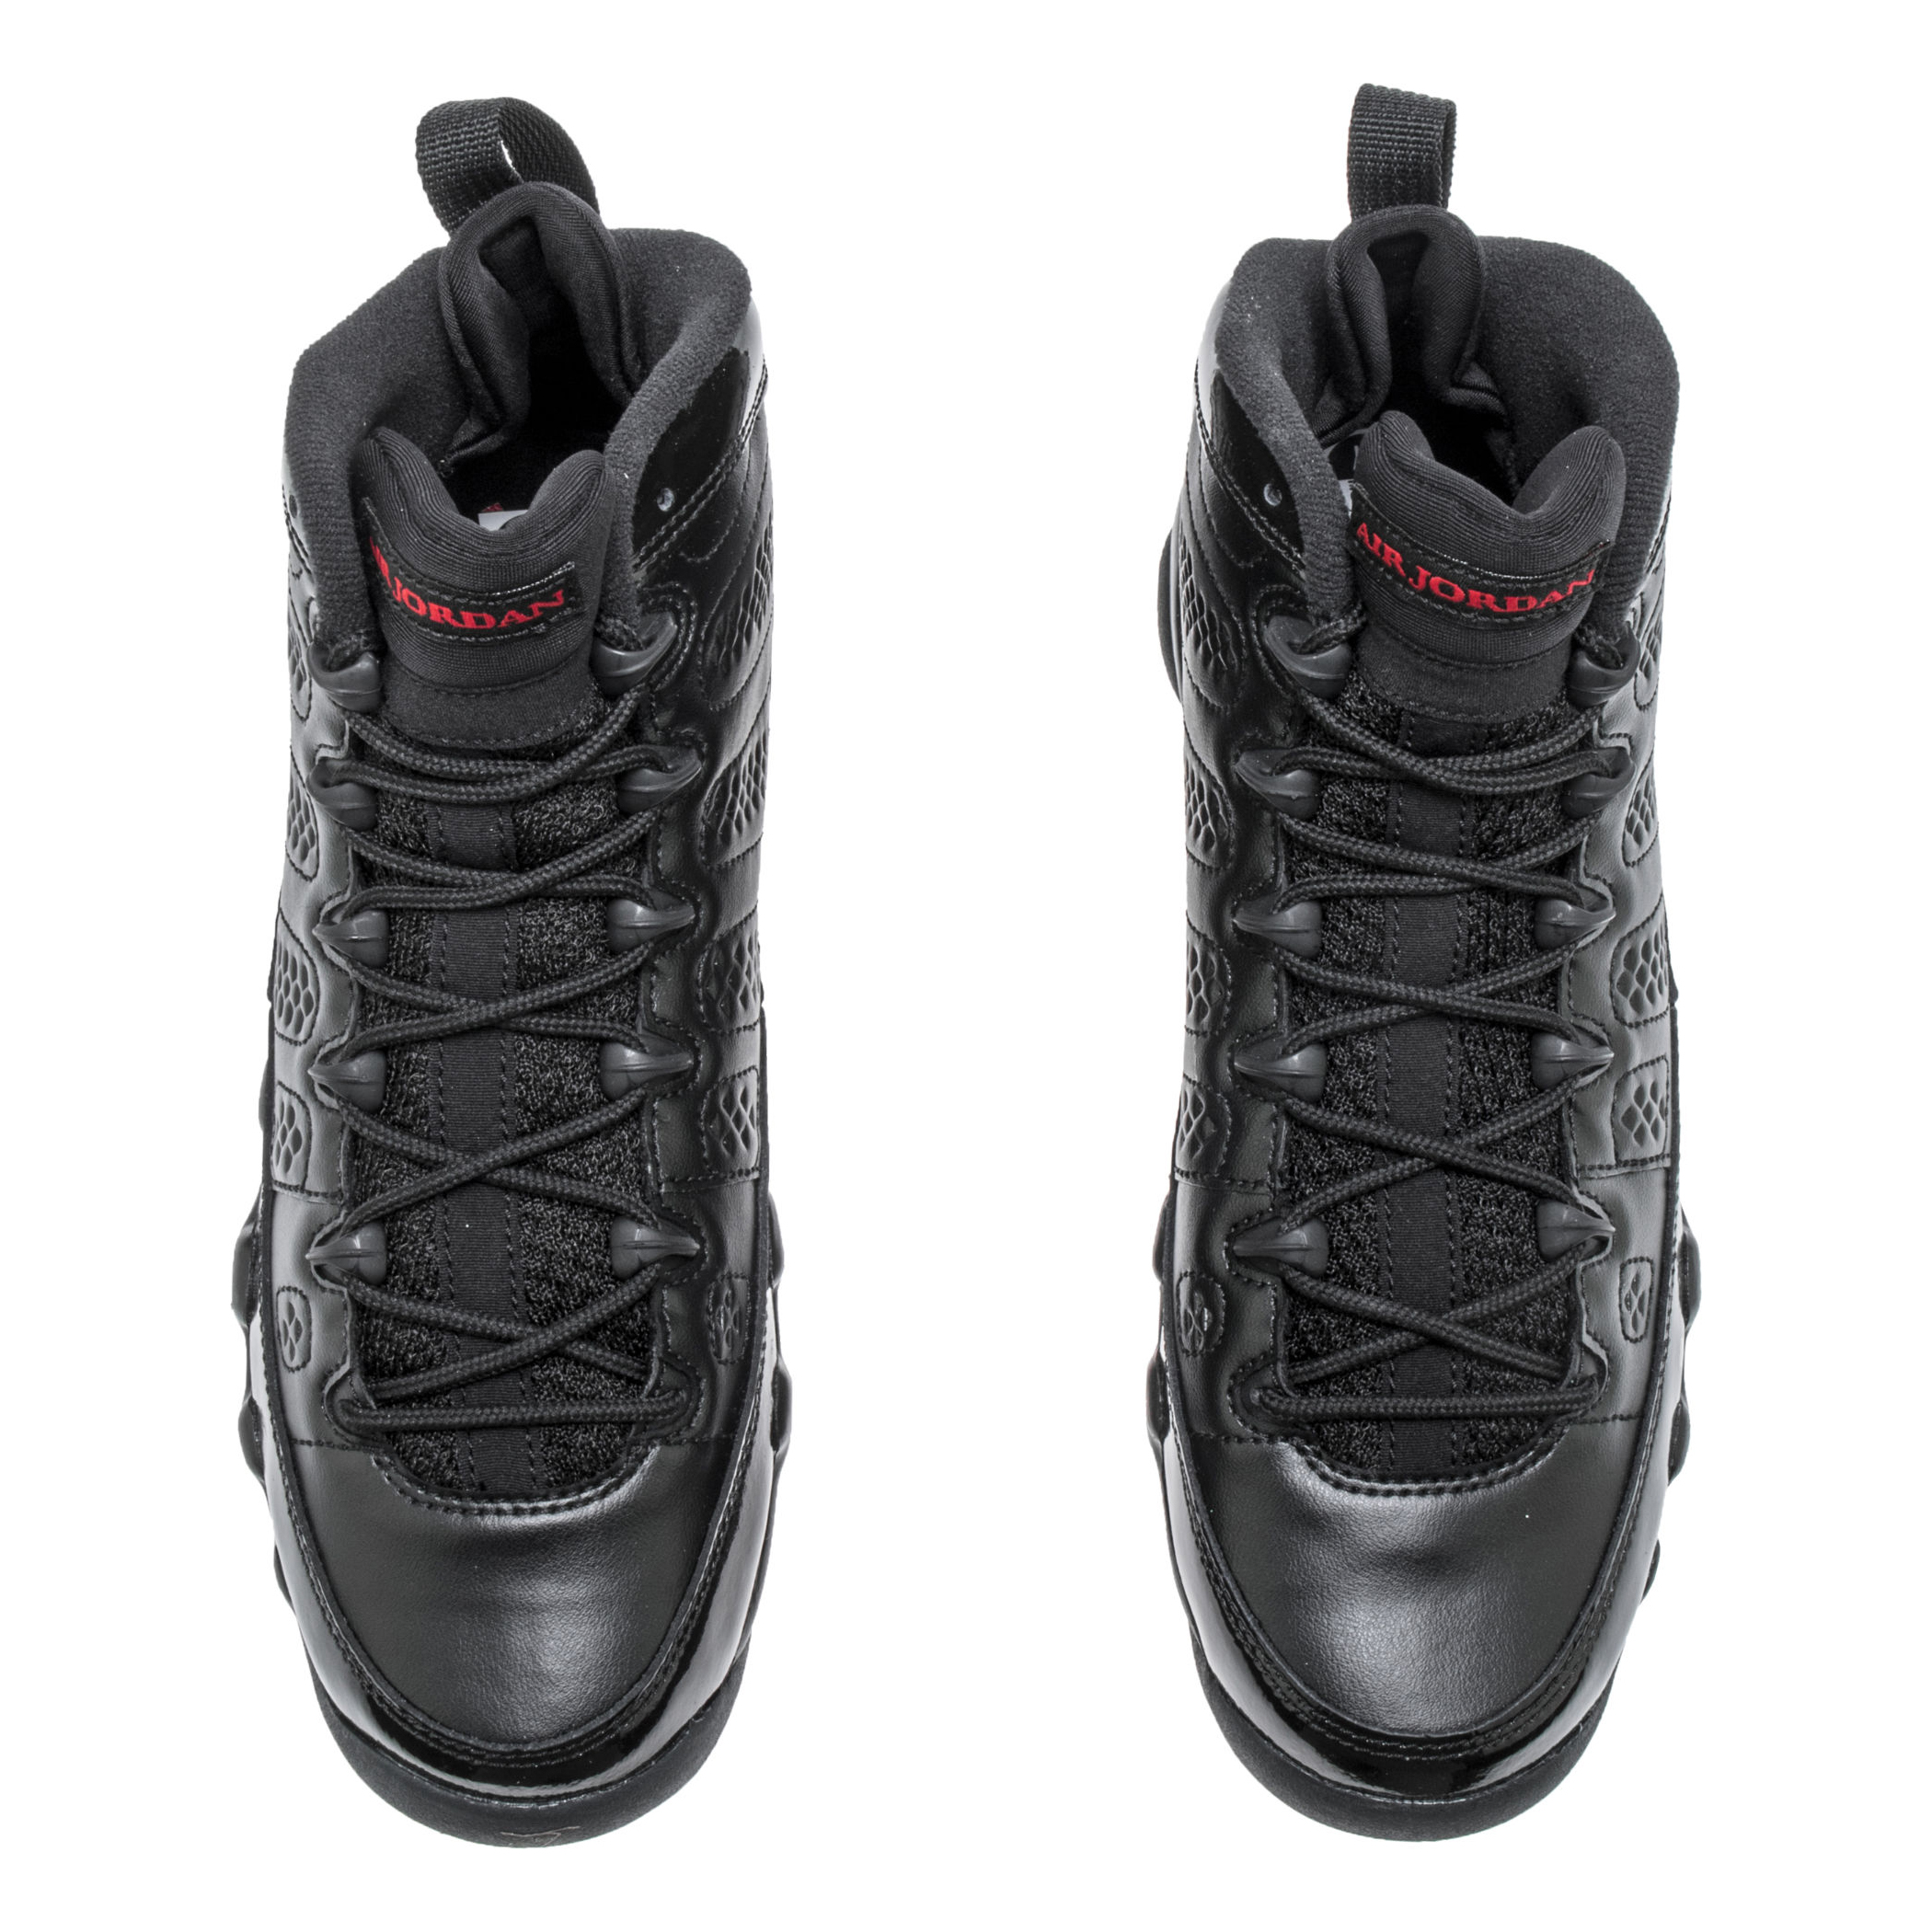 best website 799a4 aea39 The Air Jordan 9 in Black/University Red Drops for March ...